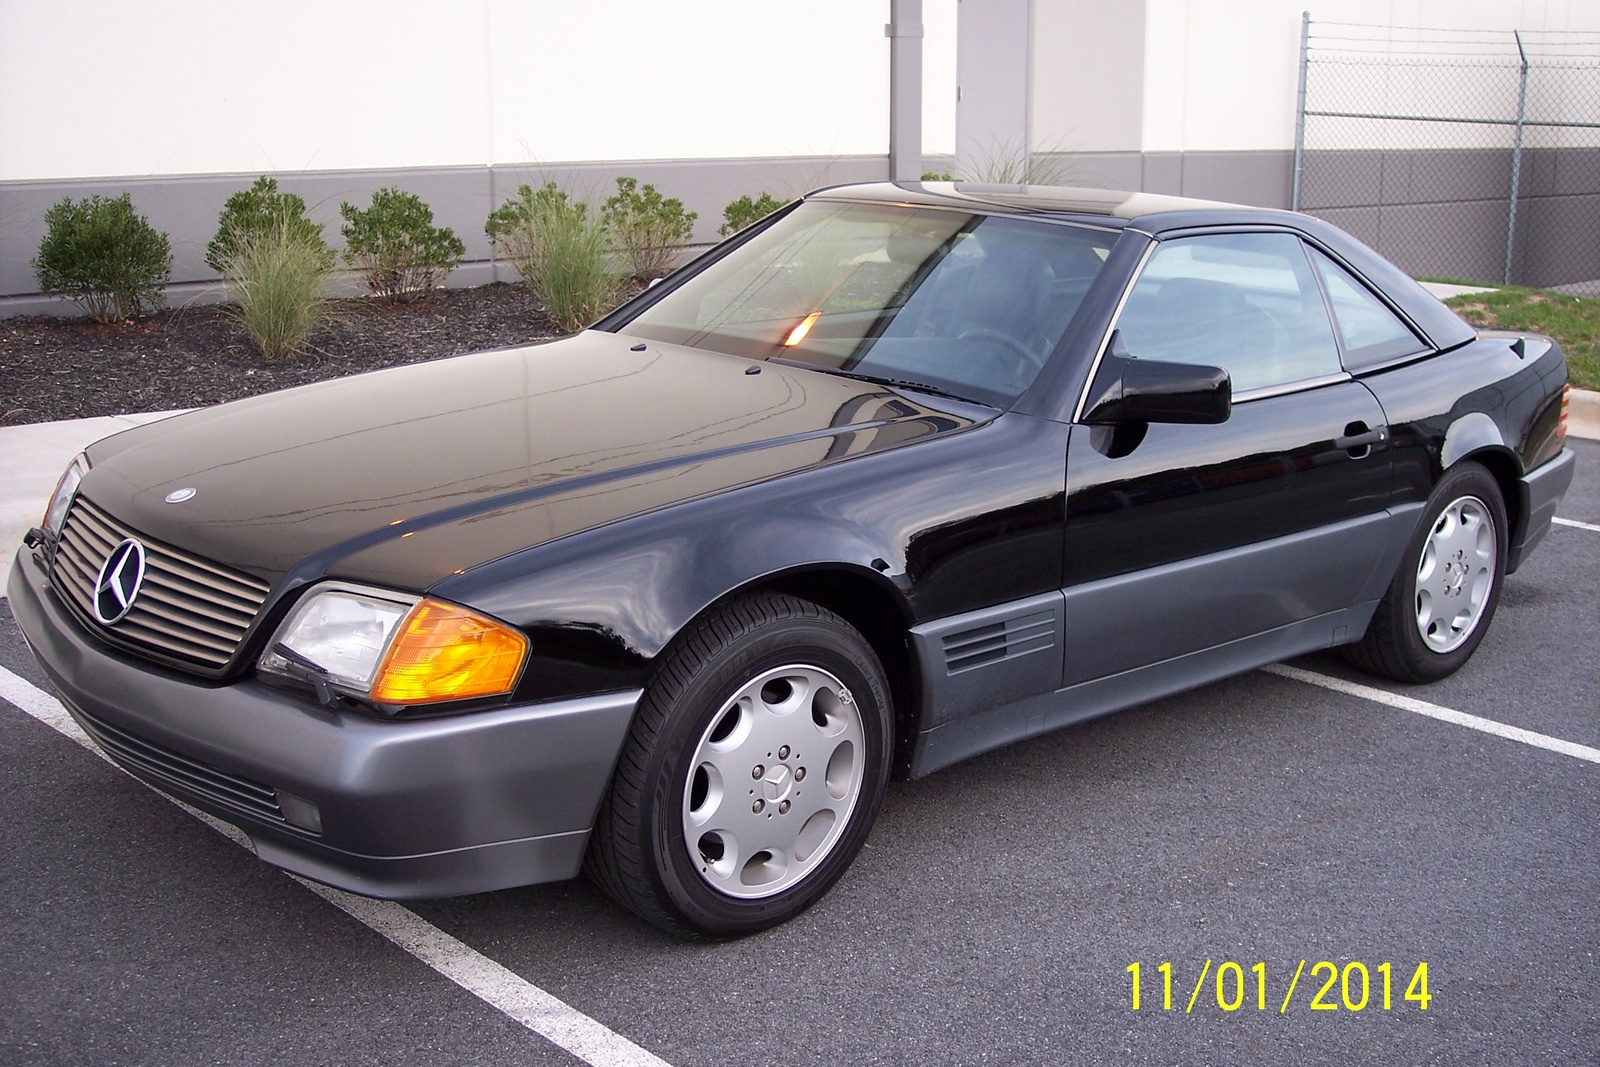 Picture of 1993 mercedes benz 300 class 2 dr 300sl for 1993 mercedes benz 300sd